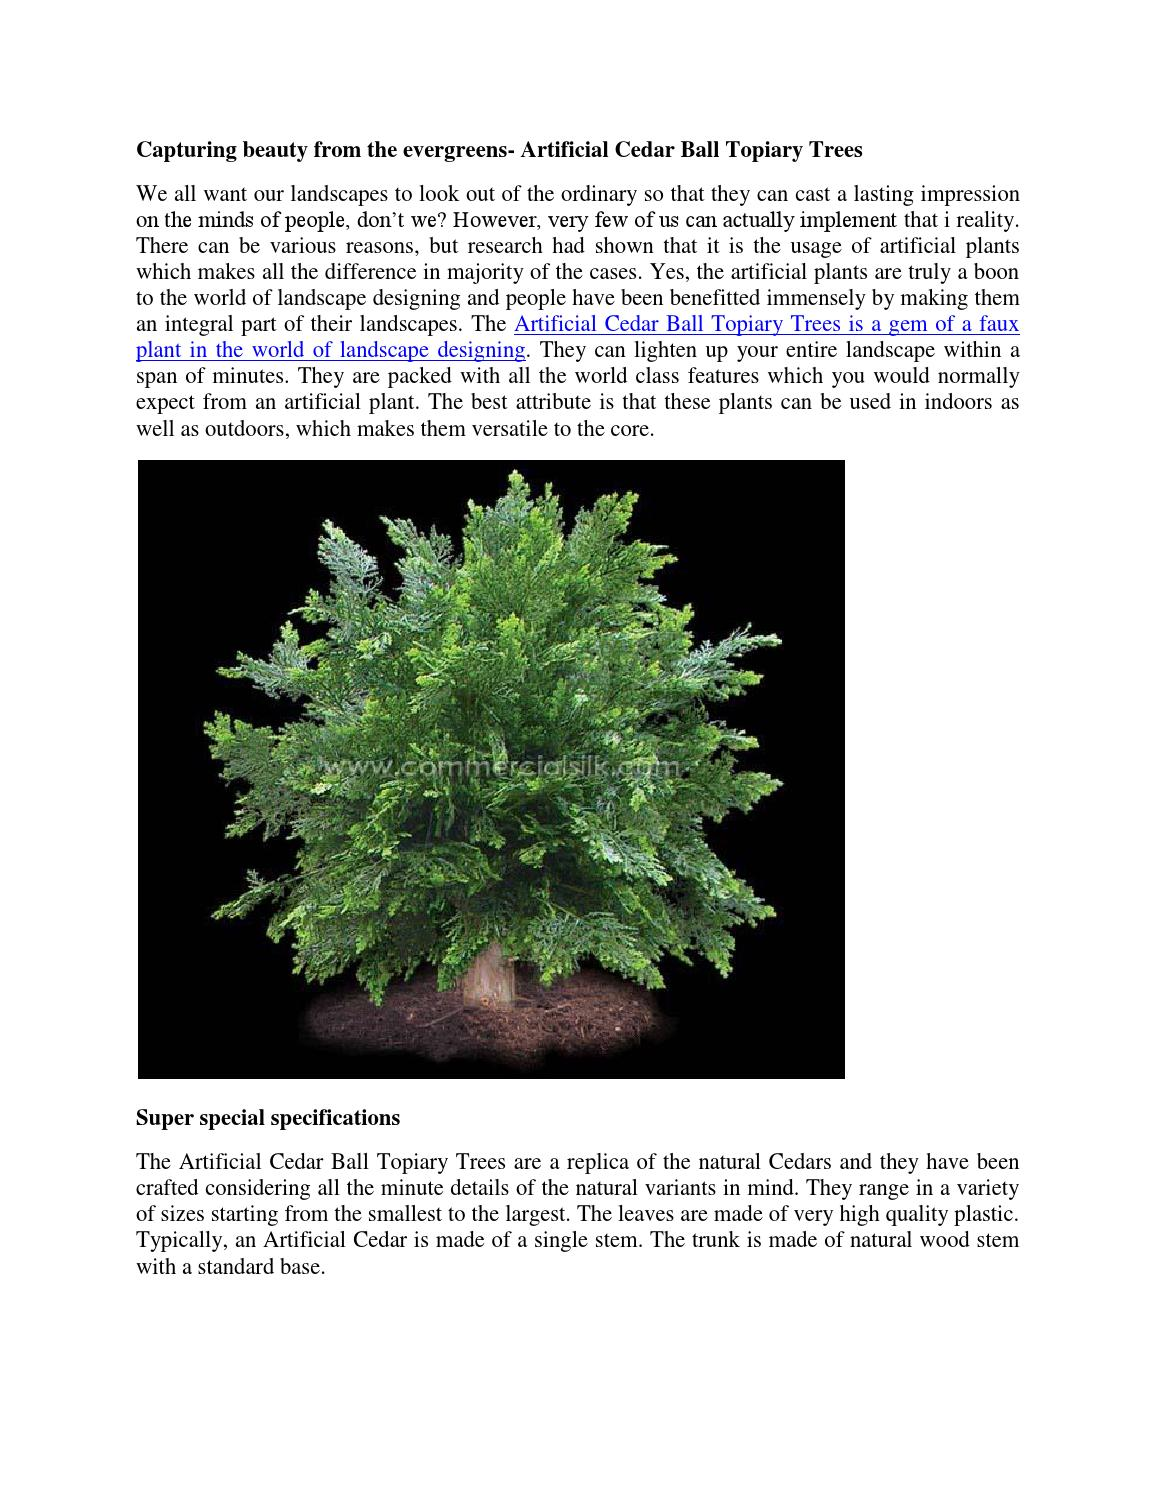 Capturing Beauty From The Evergreens Artificial Cedar Ball Topiary Tree By Megan Vaughn Issuu